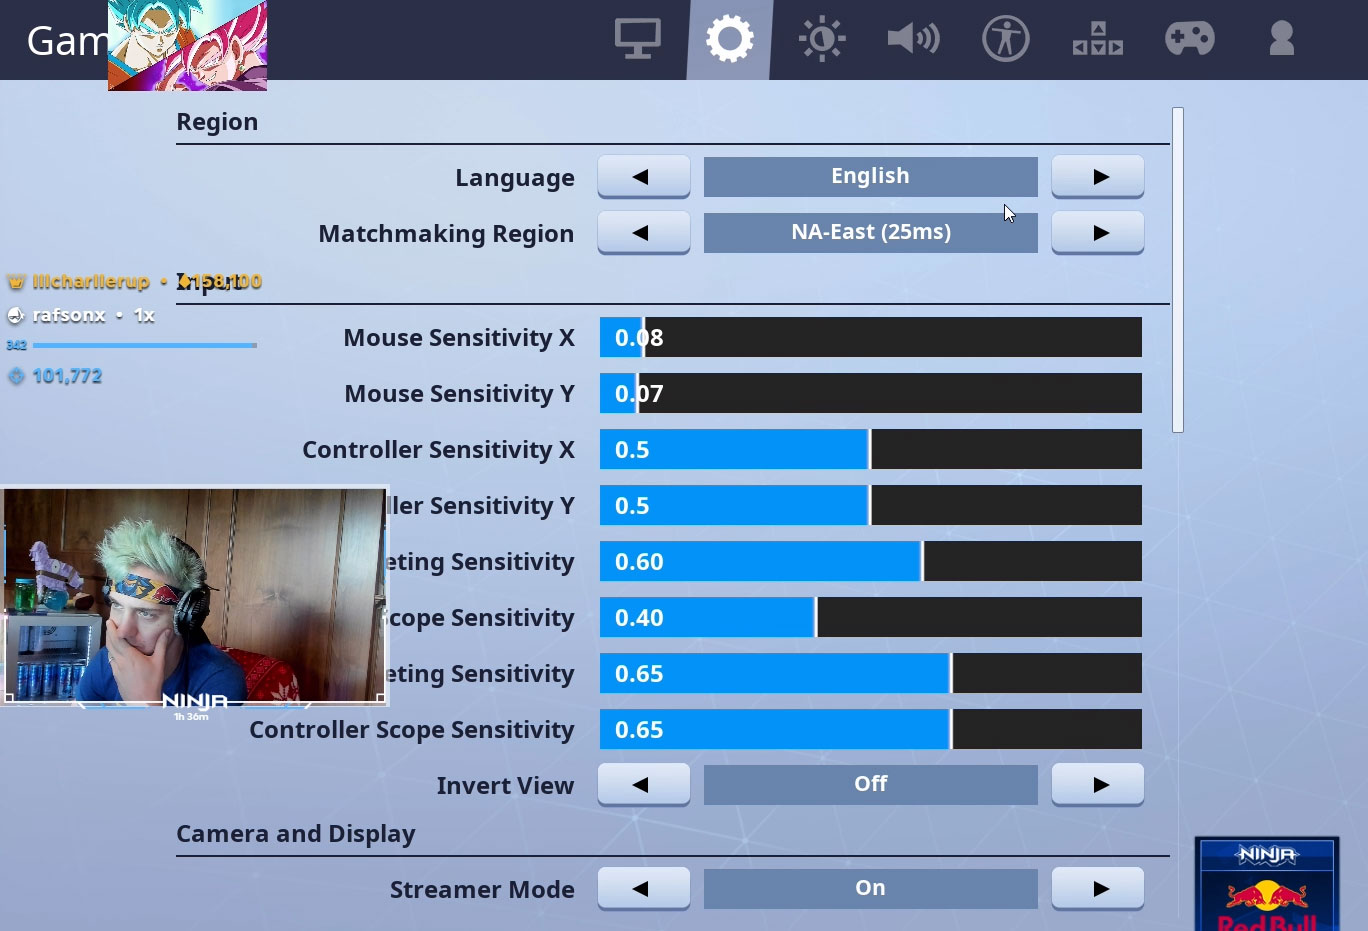 fortnite game settings - fortnite ps4 keyboard and mouse delay